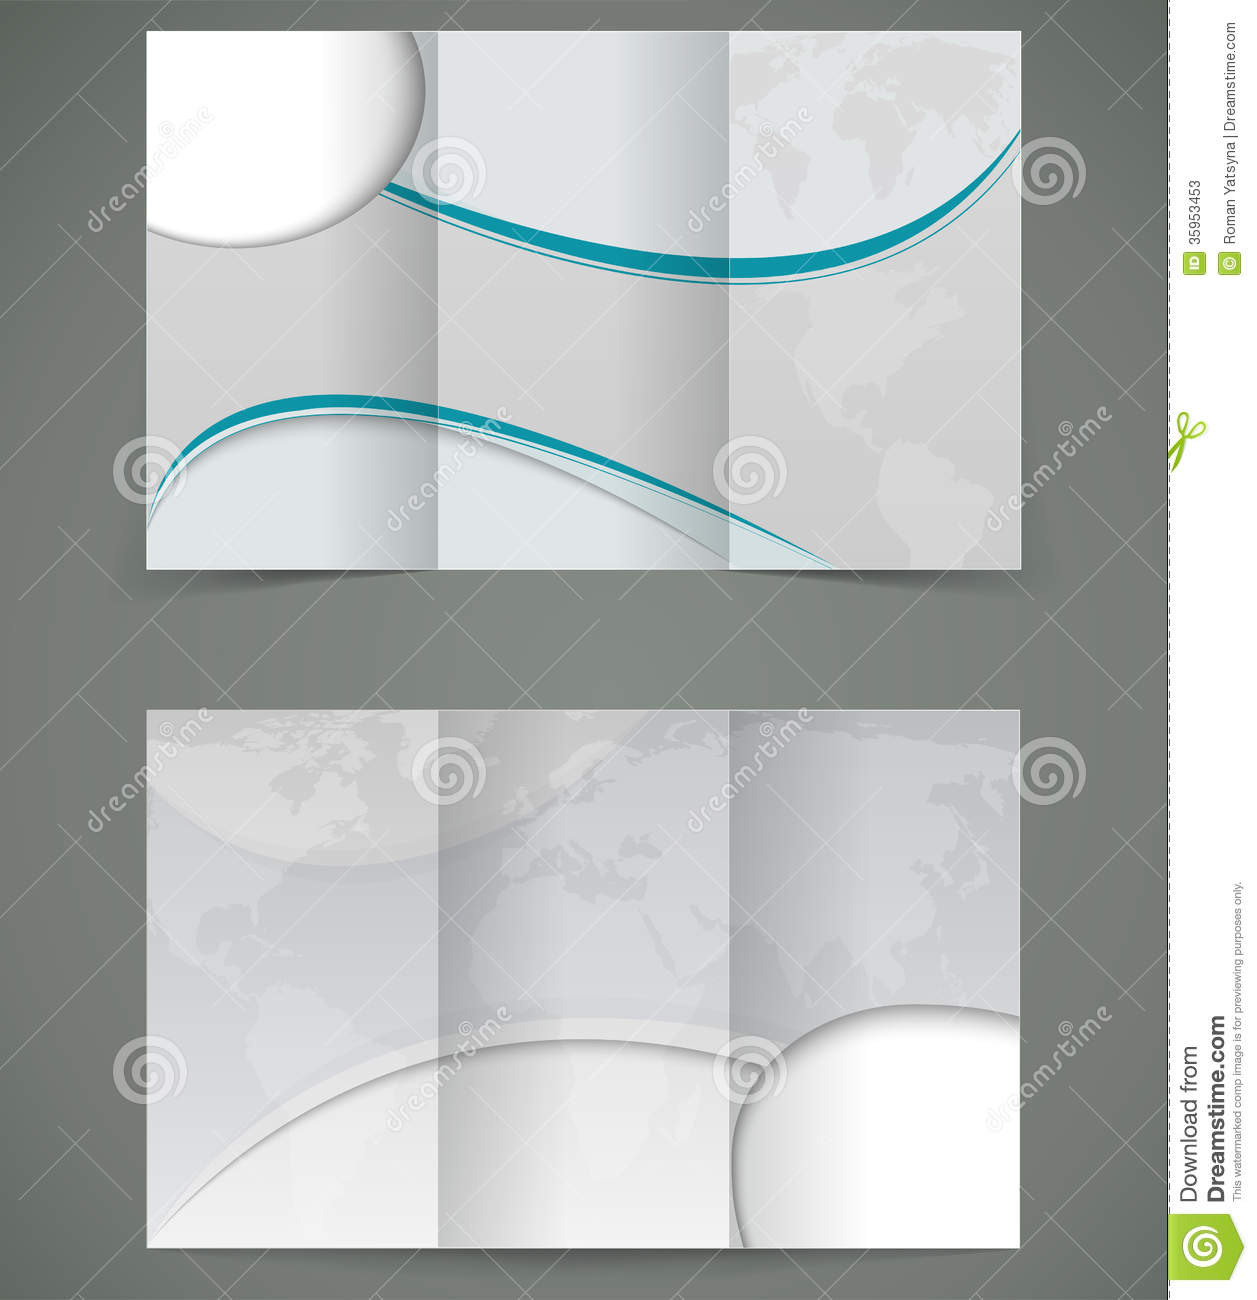 brochure layout design - vector silver brochure layout design business thr stock